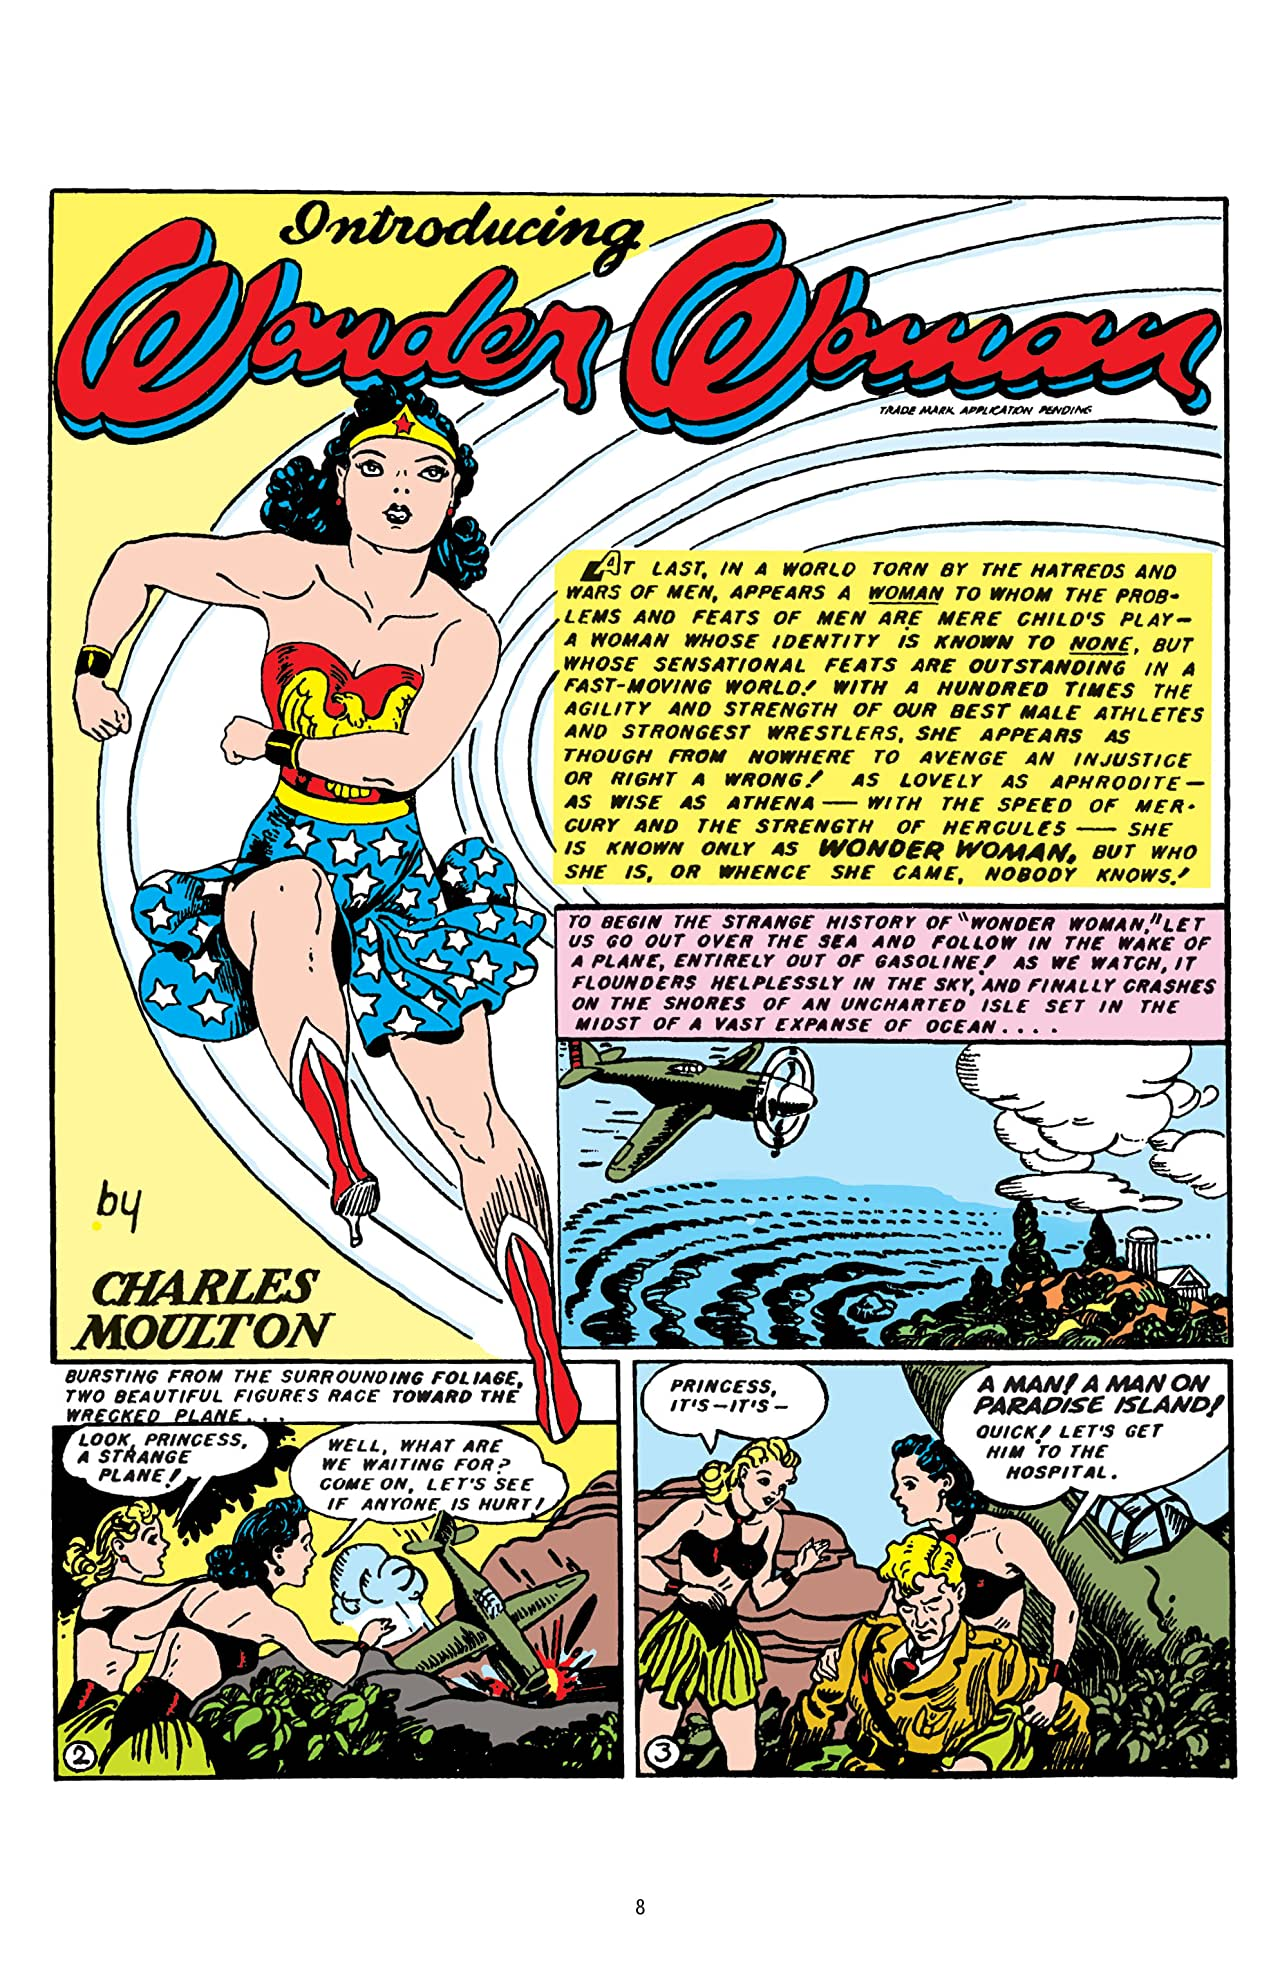 Wonder Woman: A Celebration of 75 Years